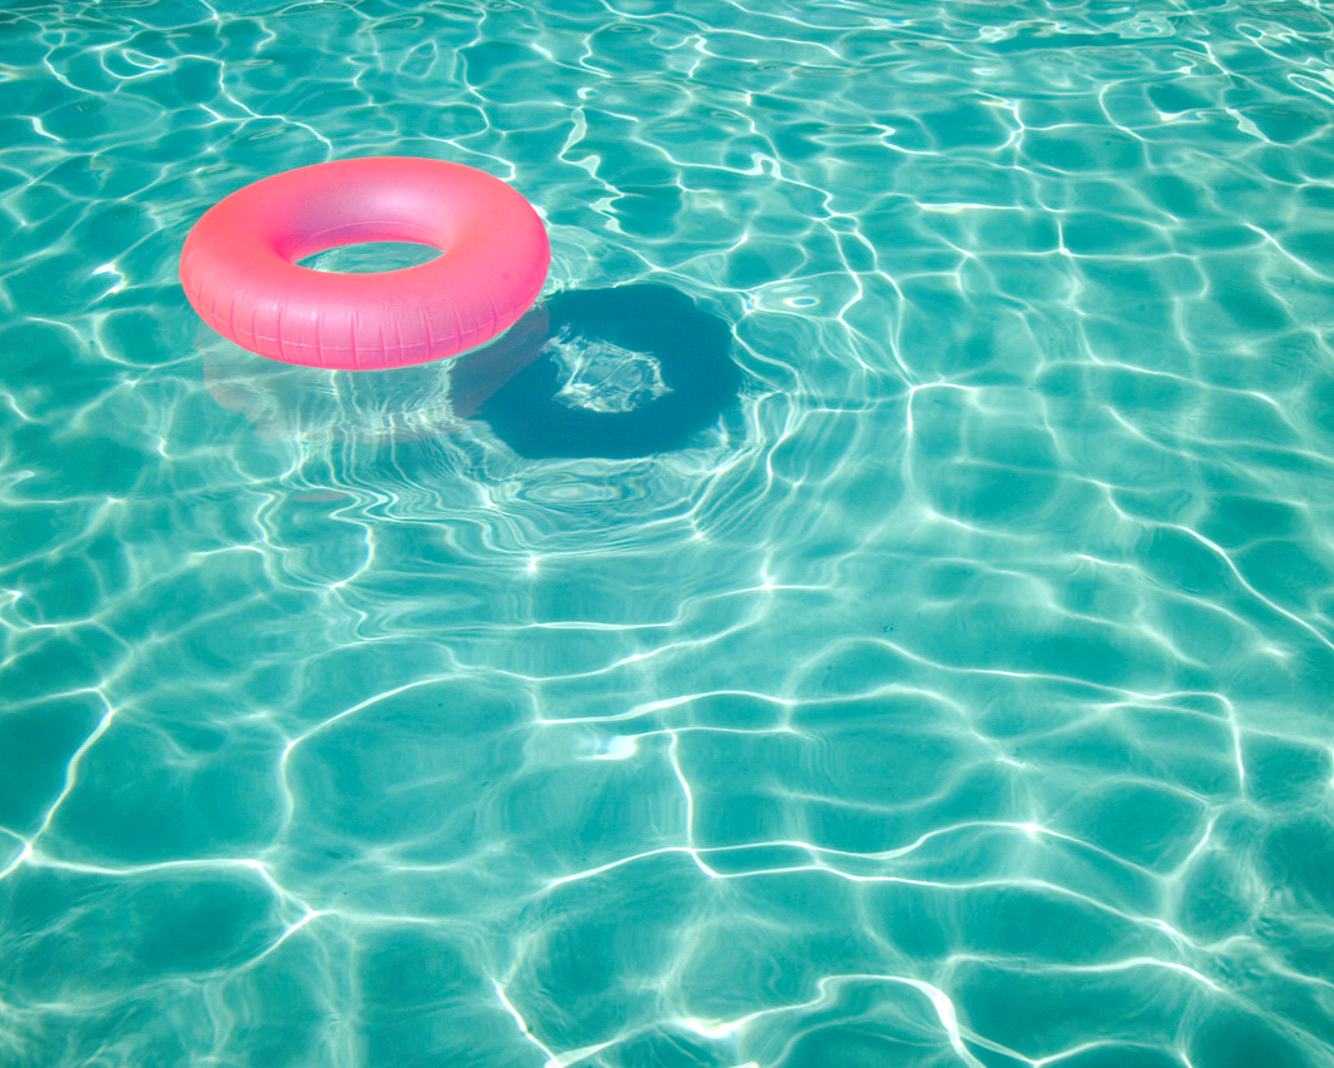 Pink donut floating in pool water